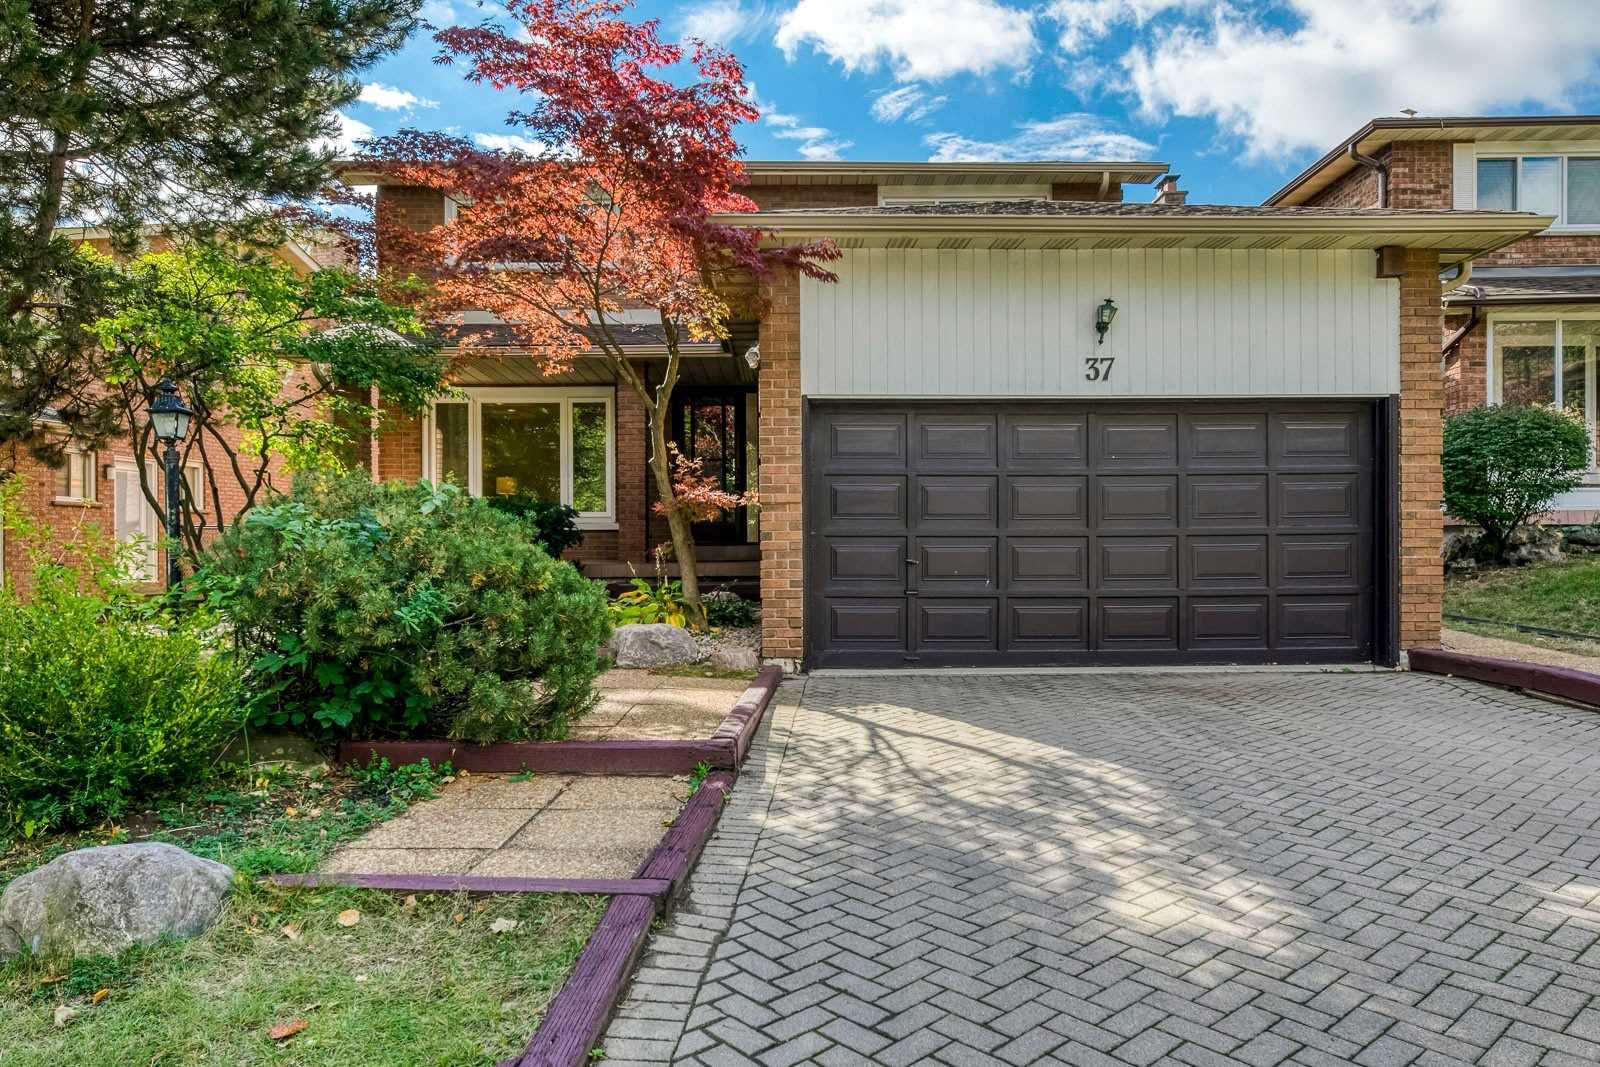 Main Photo: 37 Sycamore Dr in Markham: Aileen-Willowbrook Freehold for sale : MLS®# N4933525